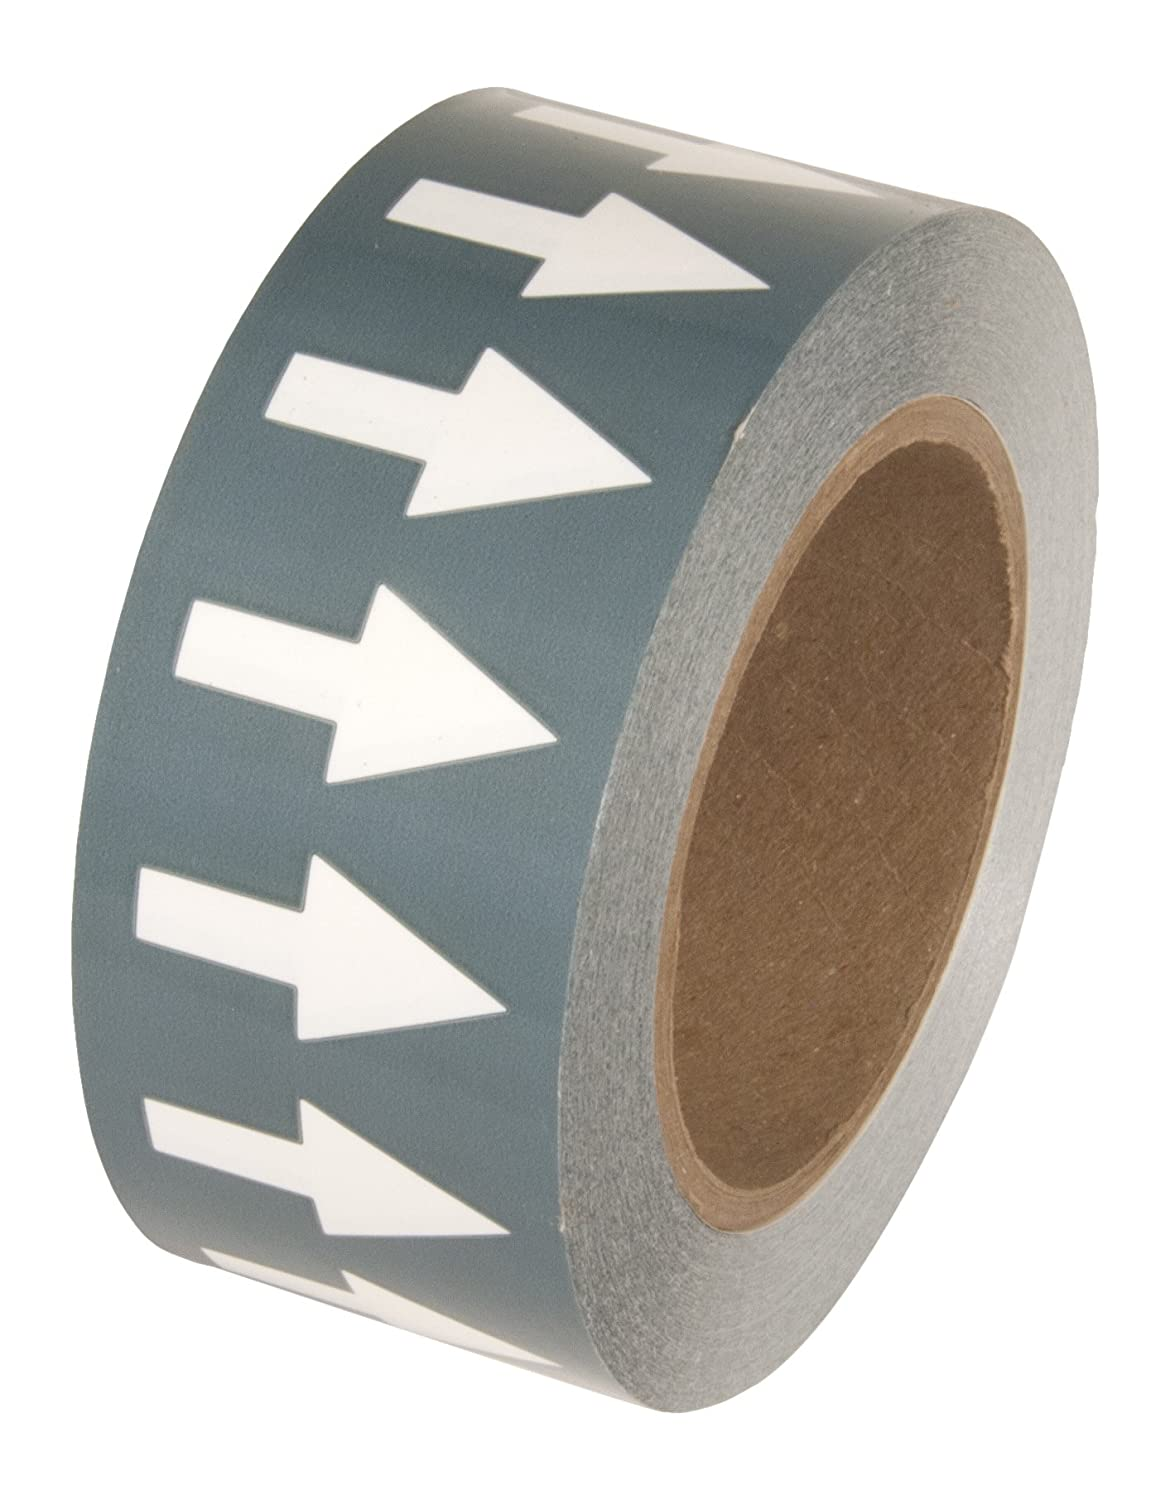 INCOM Manufacturing: PMA2511 Directional Flow Arrow Pipe Identification Vinyl Marking Adhesive Tape, 2 inch x 108 ft, Gray/White